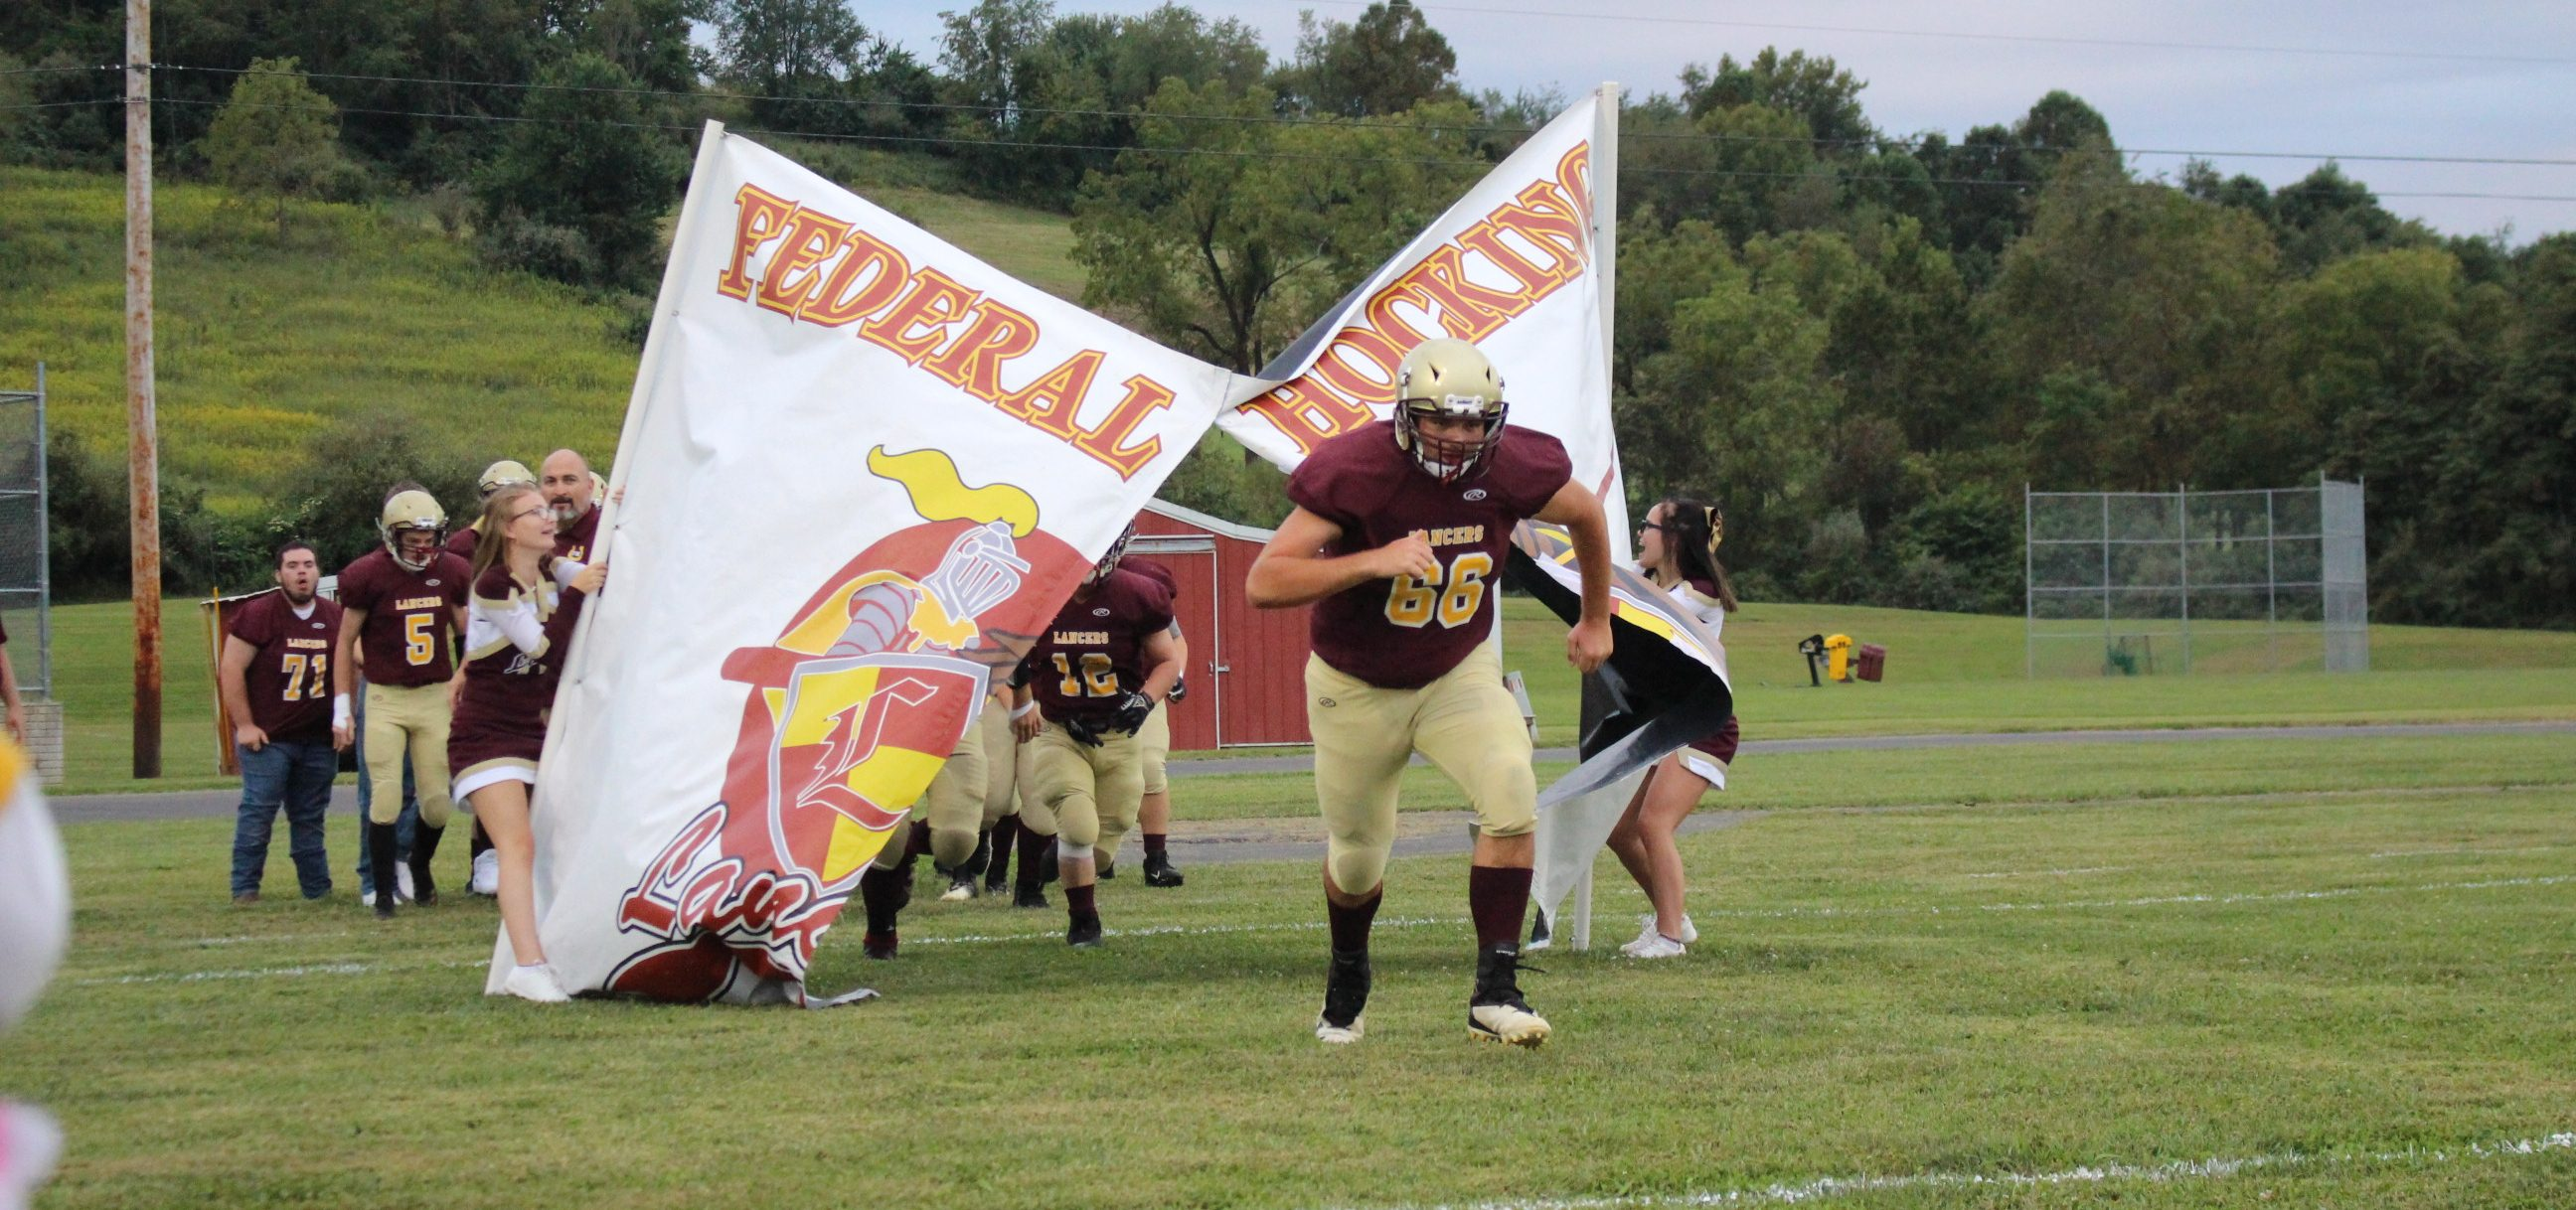 Federal Hocking player bursts through the banner